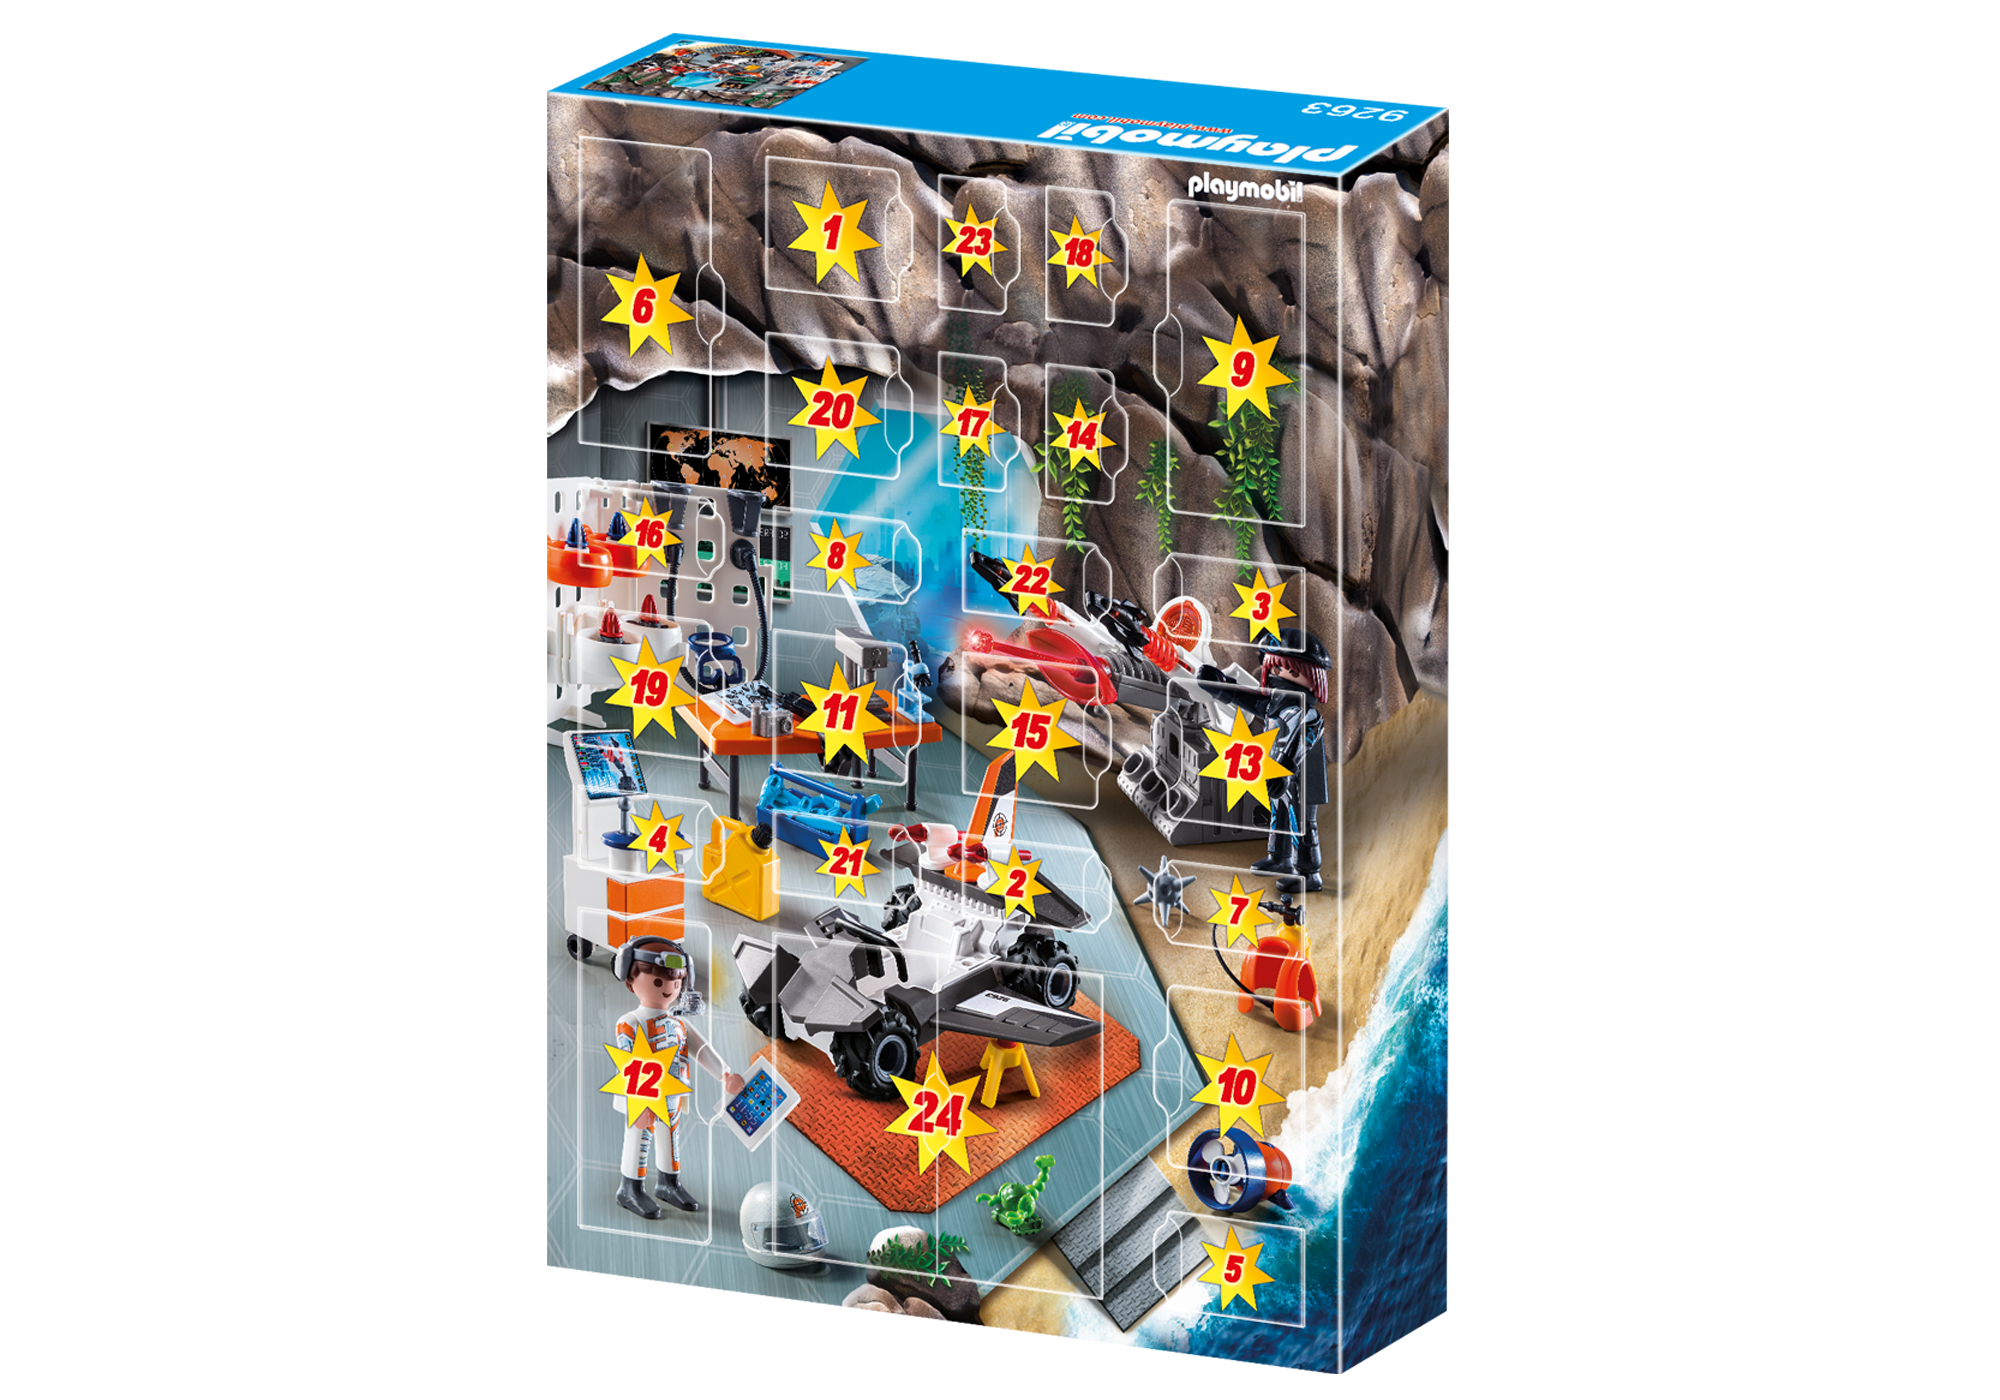 http://media.playmobil.com/i/playmobil/9263_product_extra2